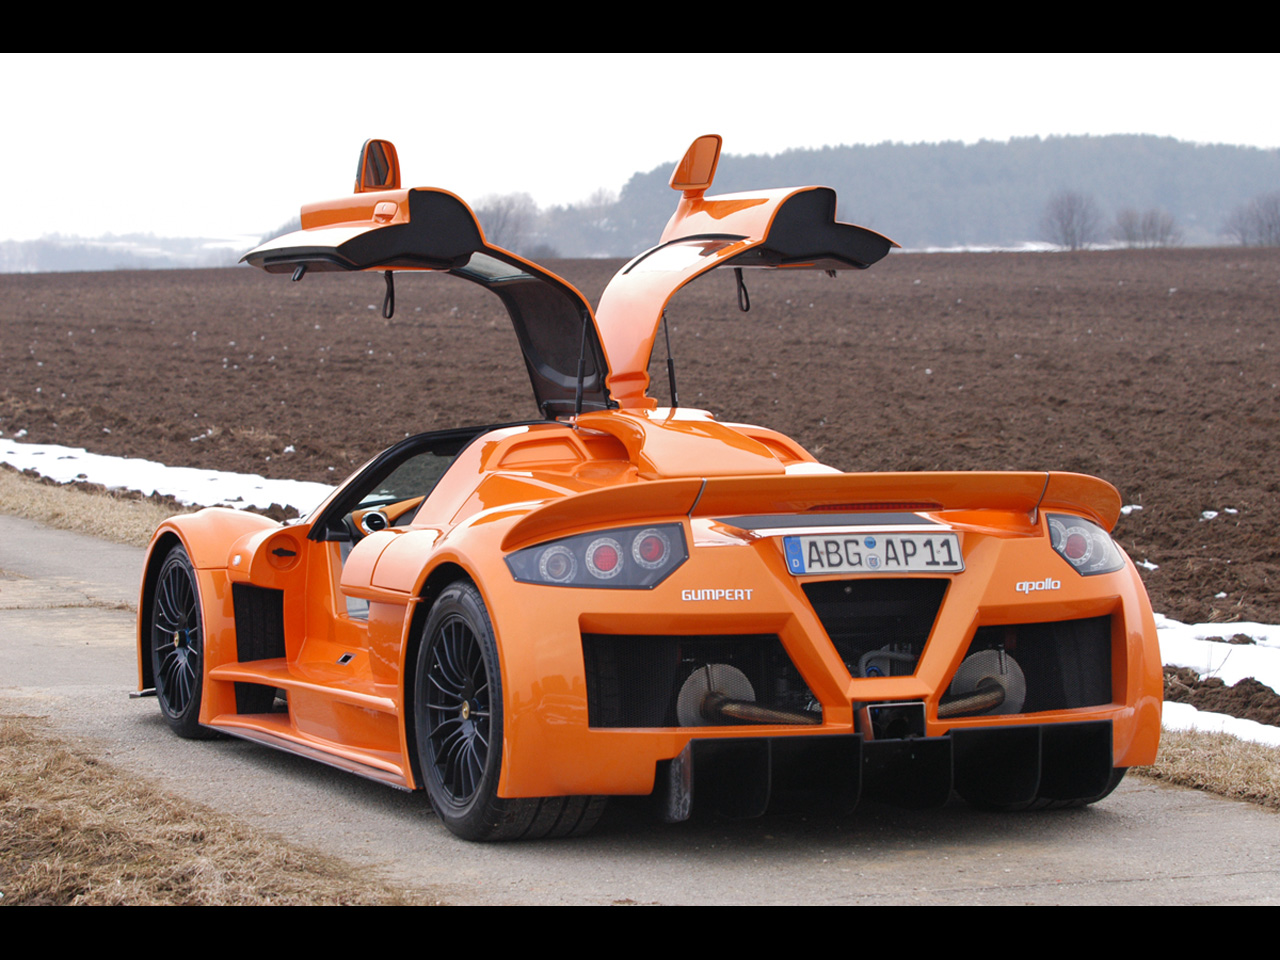 http://3.bp.blogspot.com/-y4bTQFU8Was/Tq30DOg0E-I/AAAAAAAADfs/WRc-oodLUF8/s1600/gumpert-apollo-1280x960-221.jpg